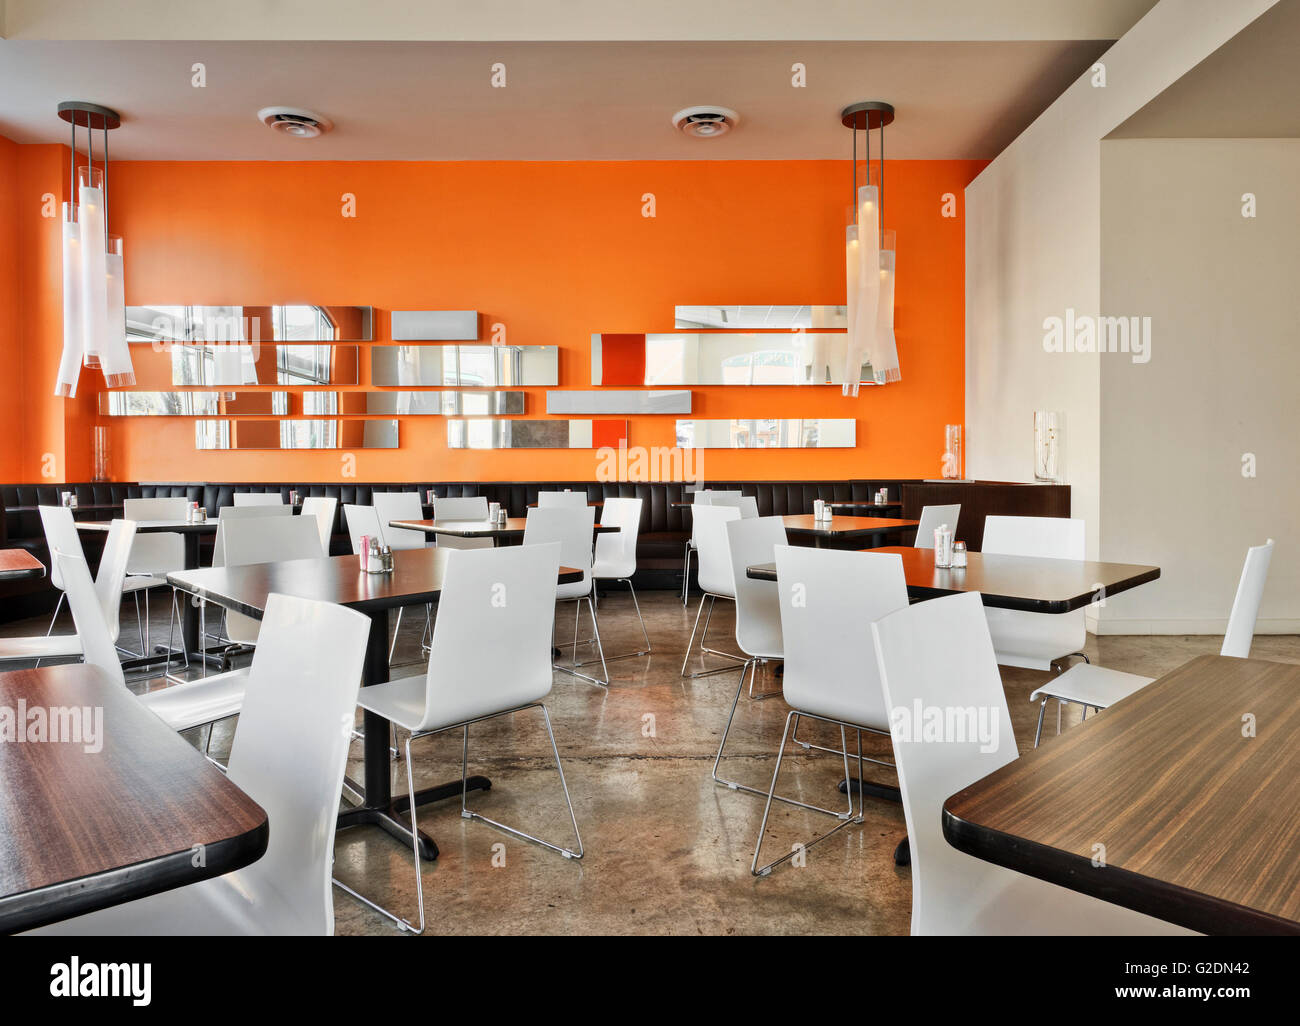 Modern Caf  with Orange Walls and White Chairs. Modern Caf  with Orange Walls and White Chairs Stock Photo